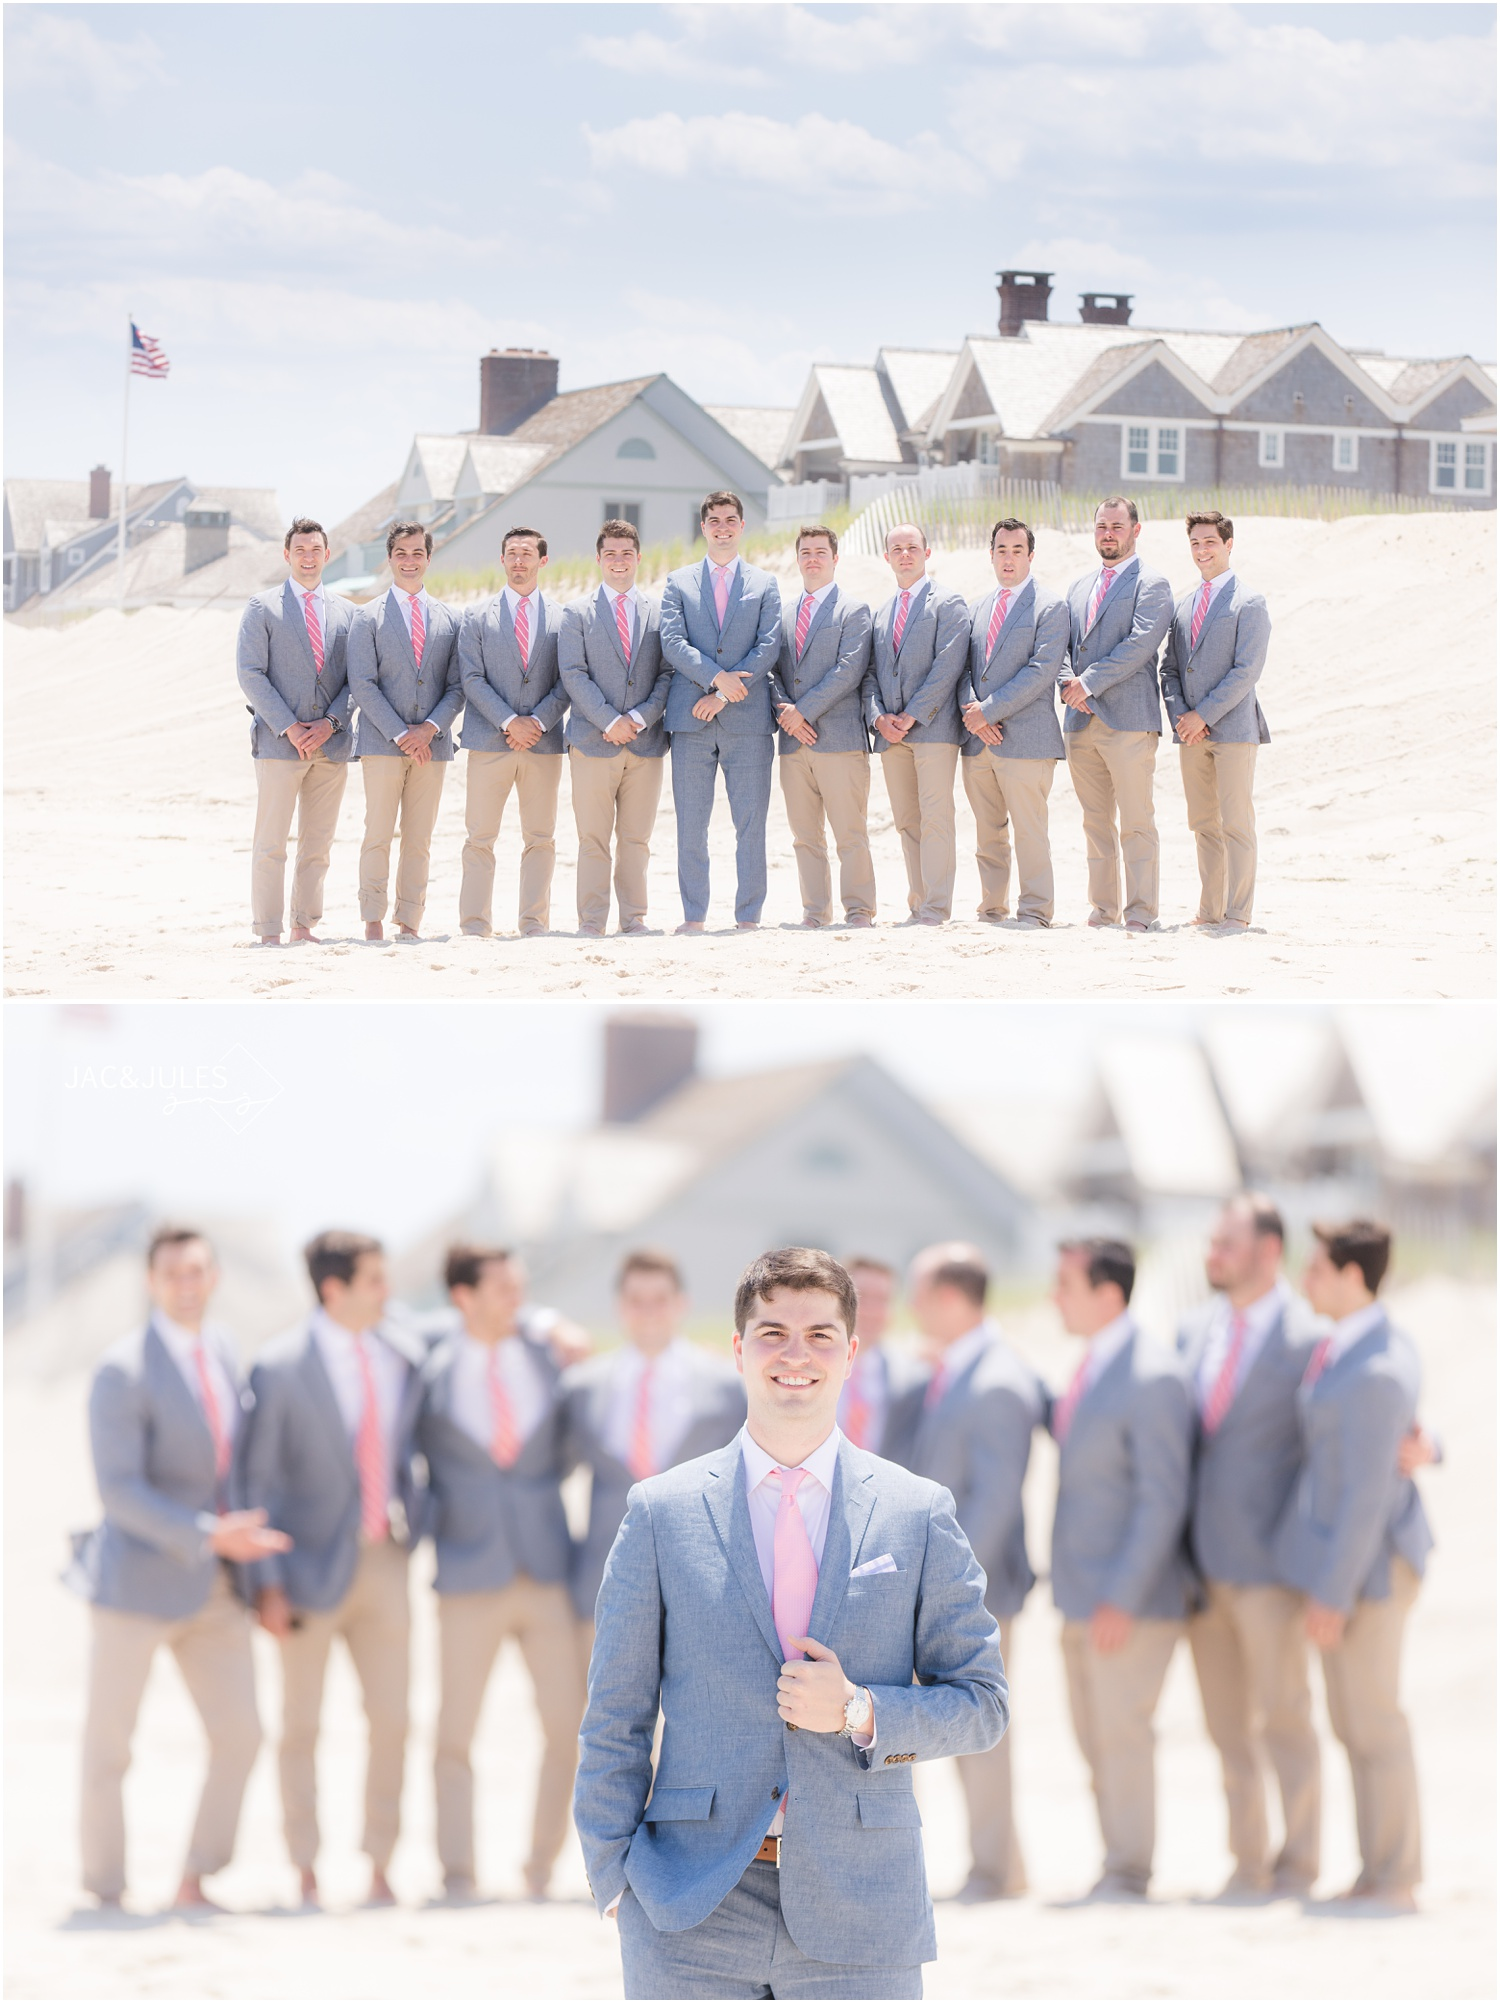 Groomsmen in Chambray suits on the beach in Mantoloking, NJ.